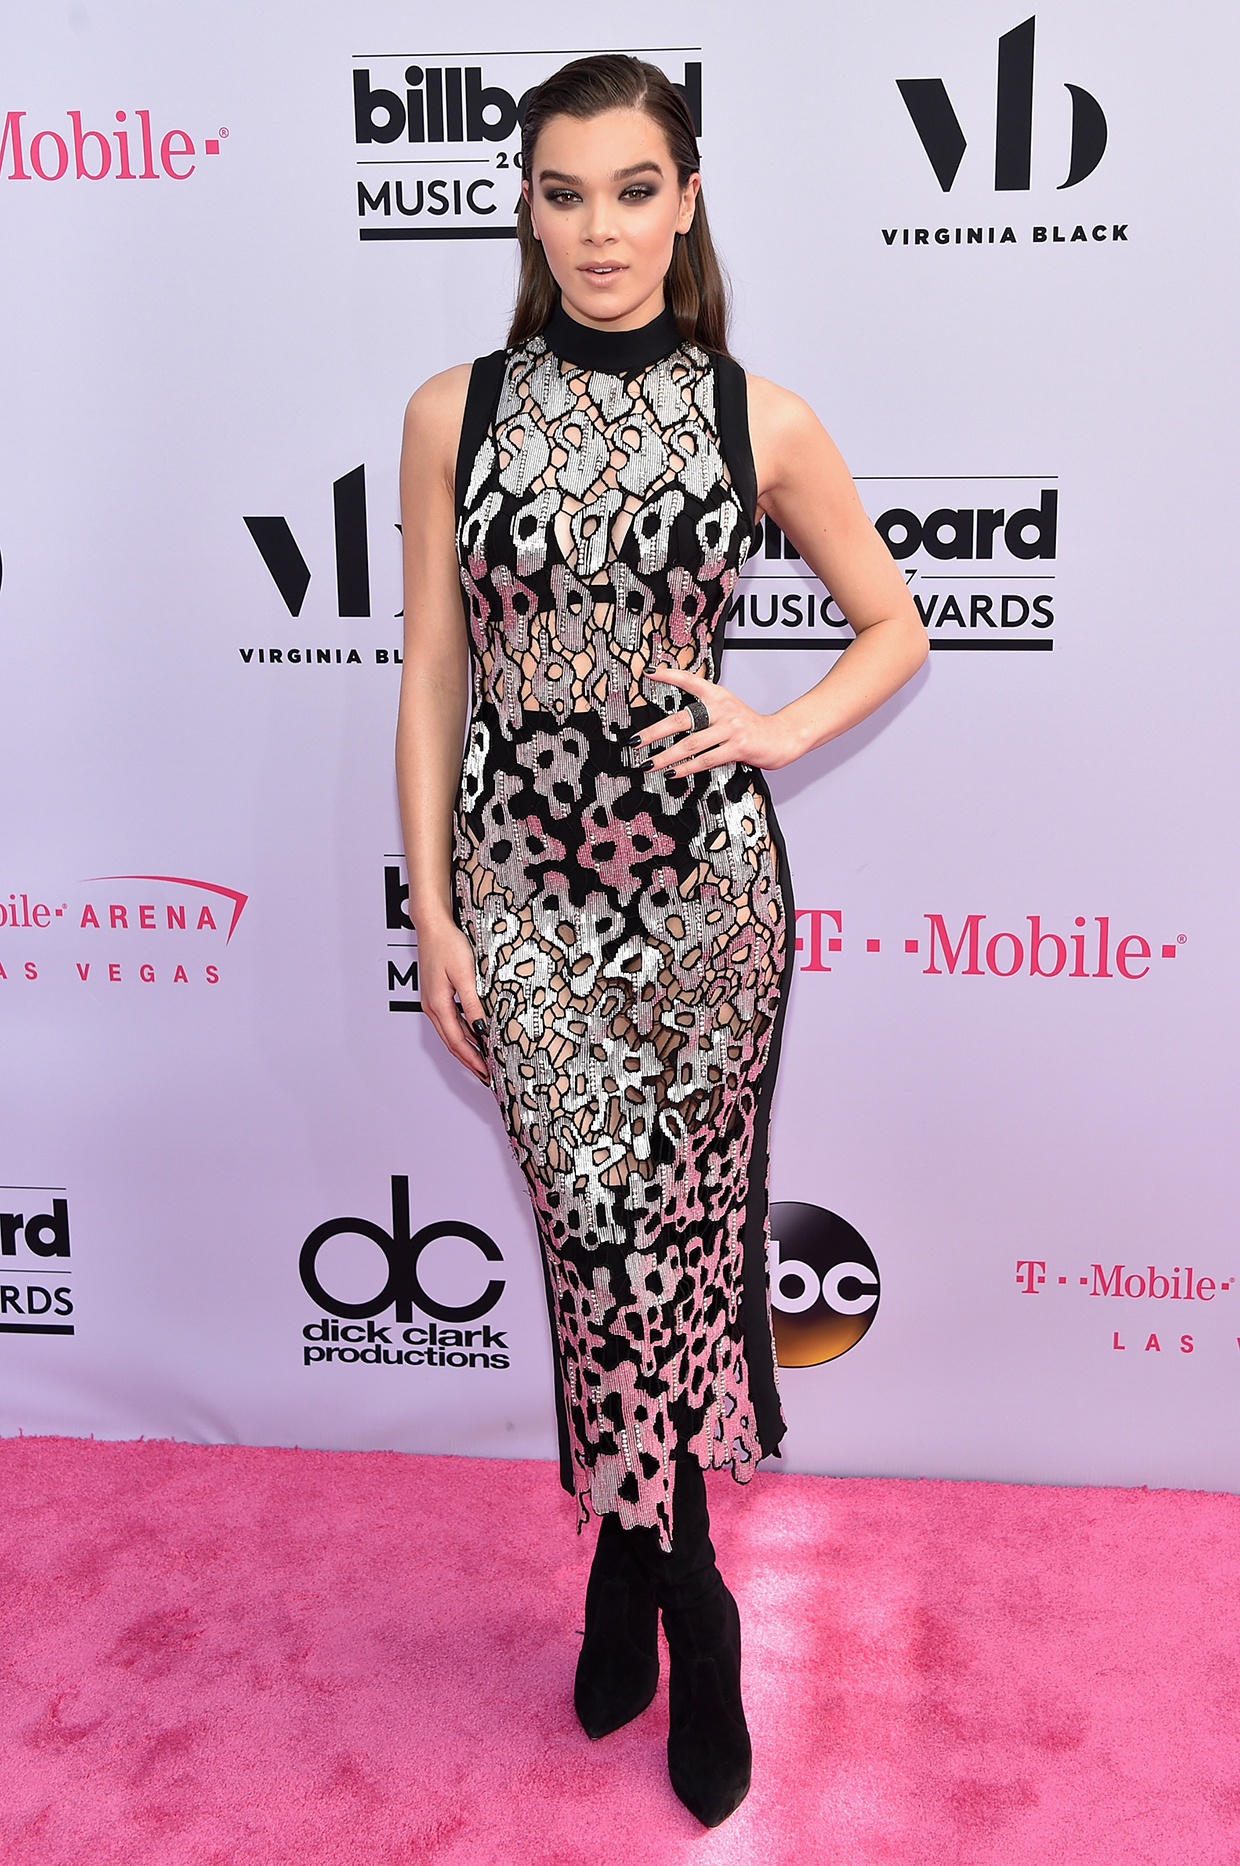 LAS VEGAS, NV - MAY 21: Singer Hailee Steinfeld attends the 2017 Billboard Music Awards at T-Mobile Arena on May 21, 2017 in Las Vegas, Nevada. (Photo by John Shearer/Getty Images)